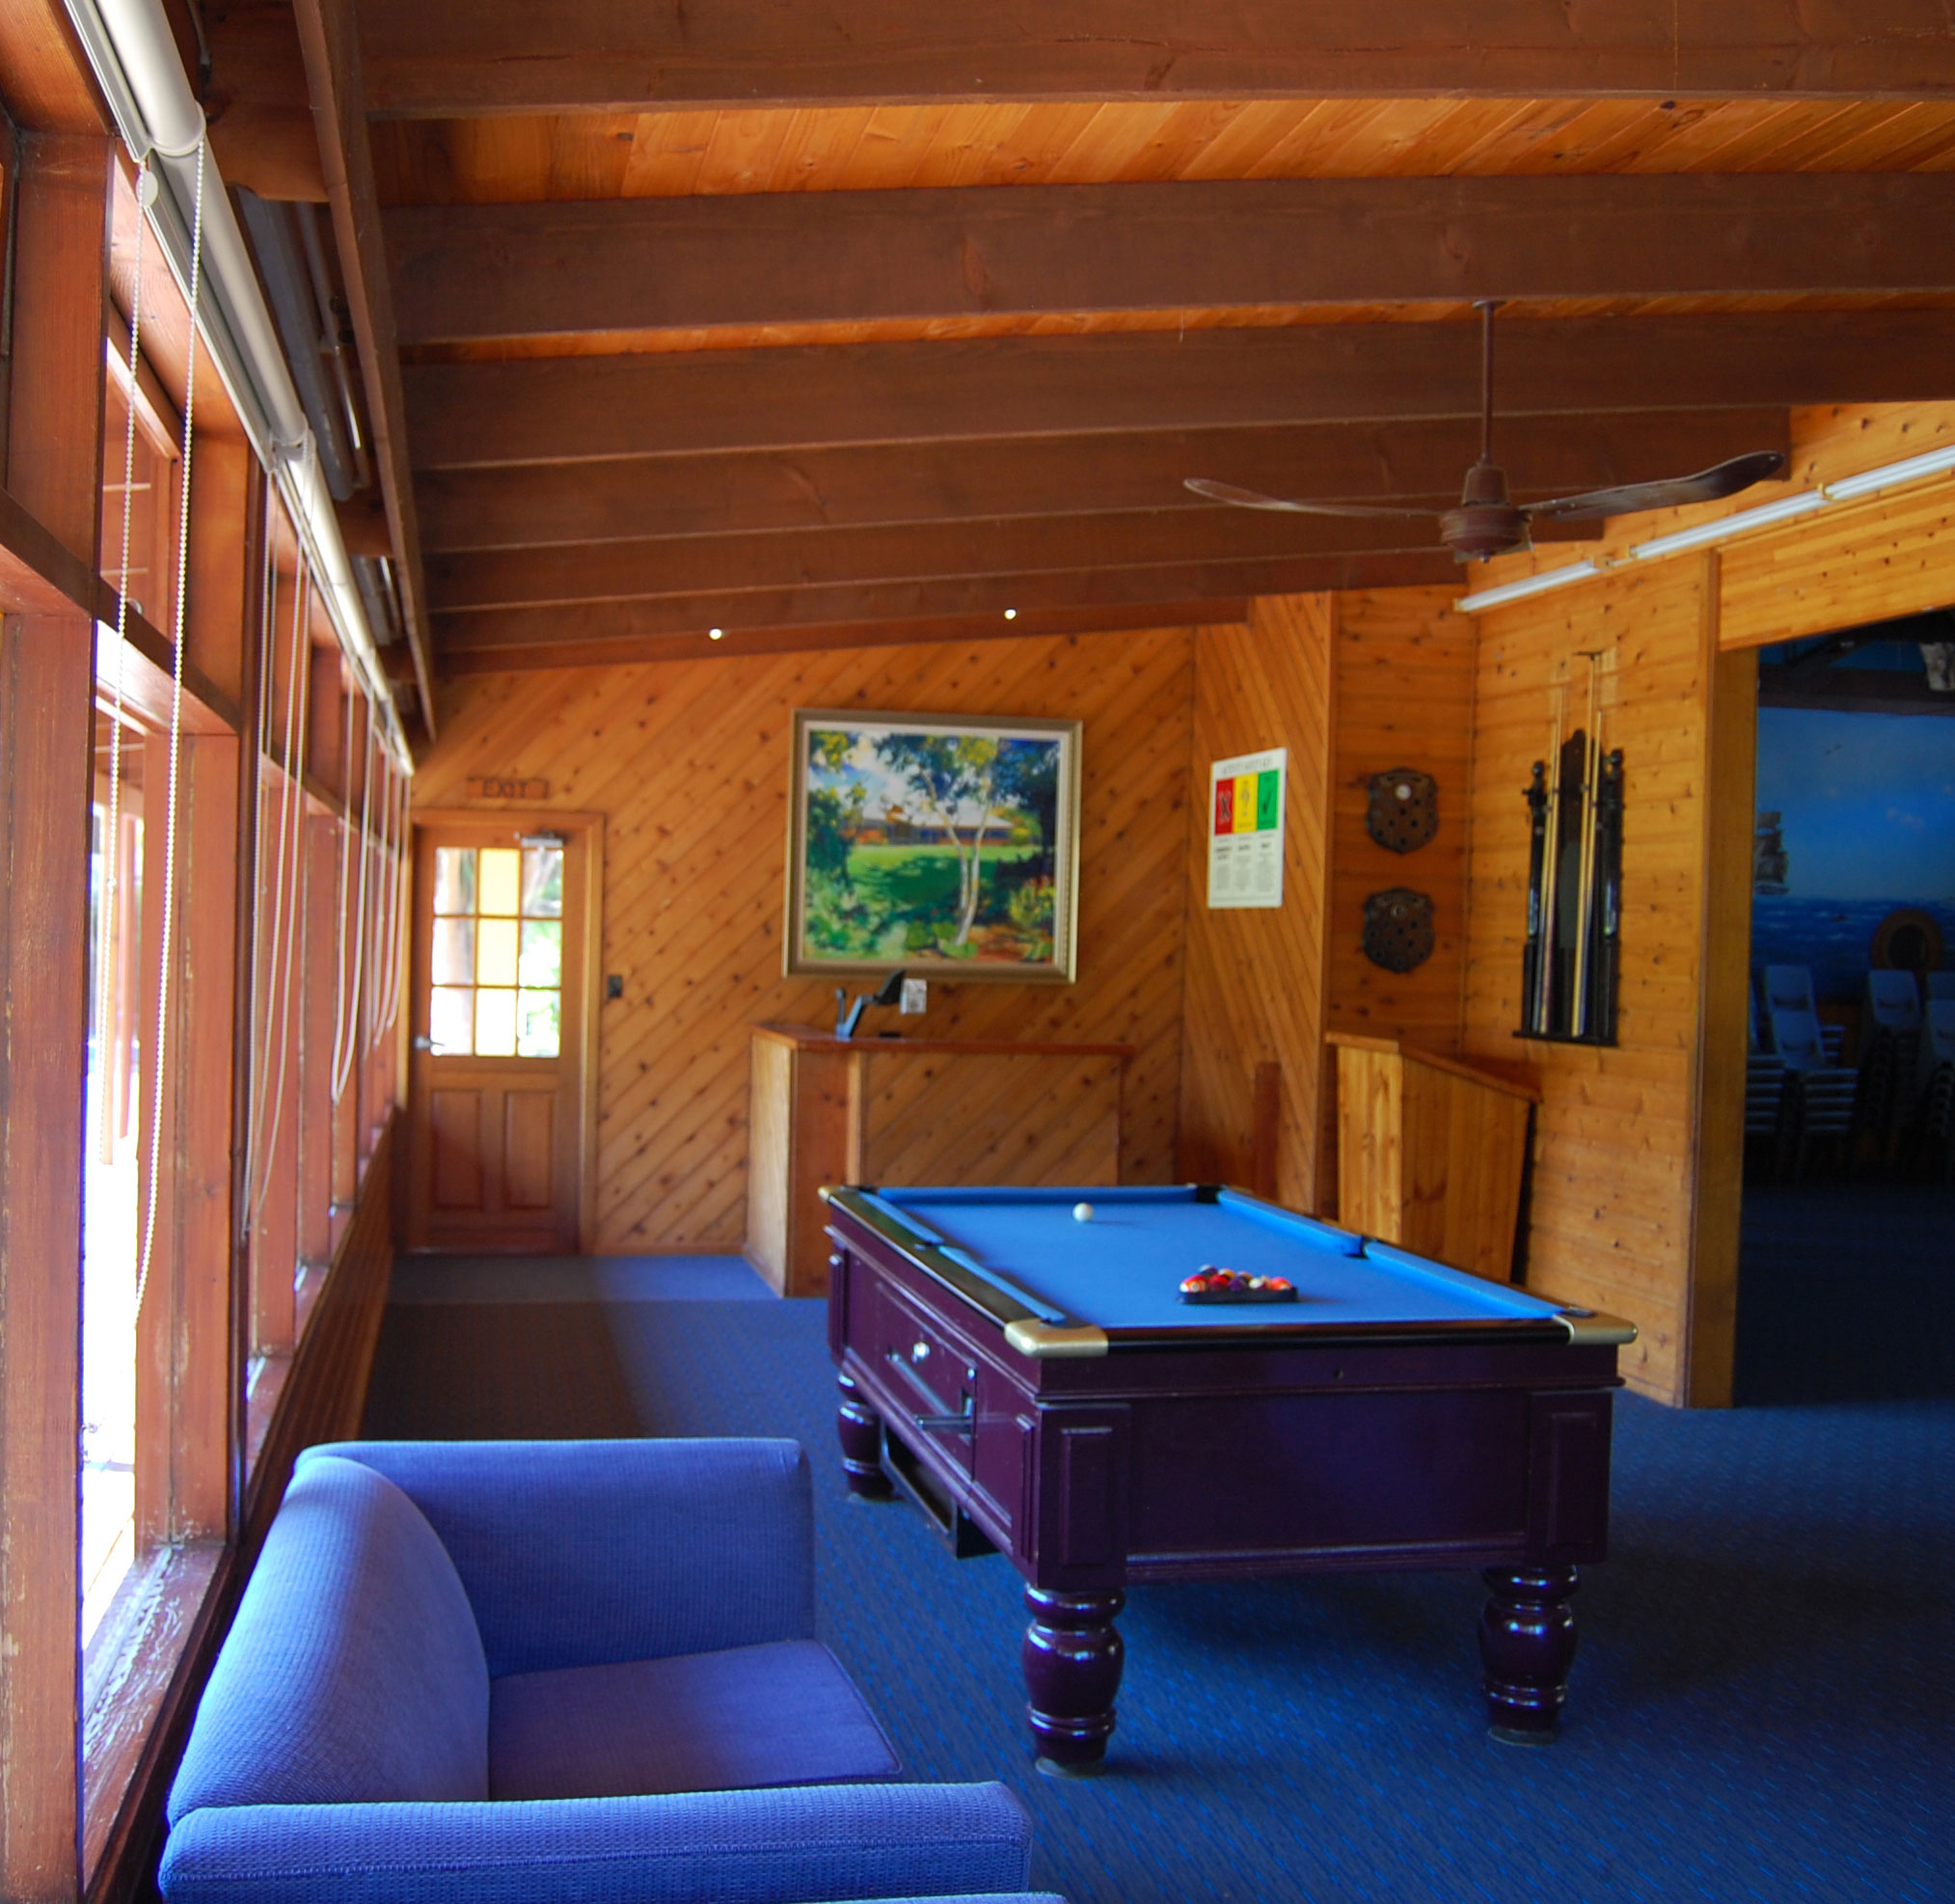 Image of the Reception area and Pool table